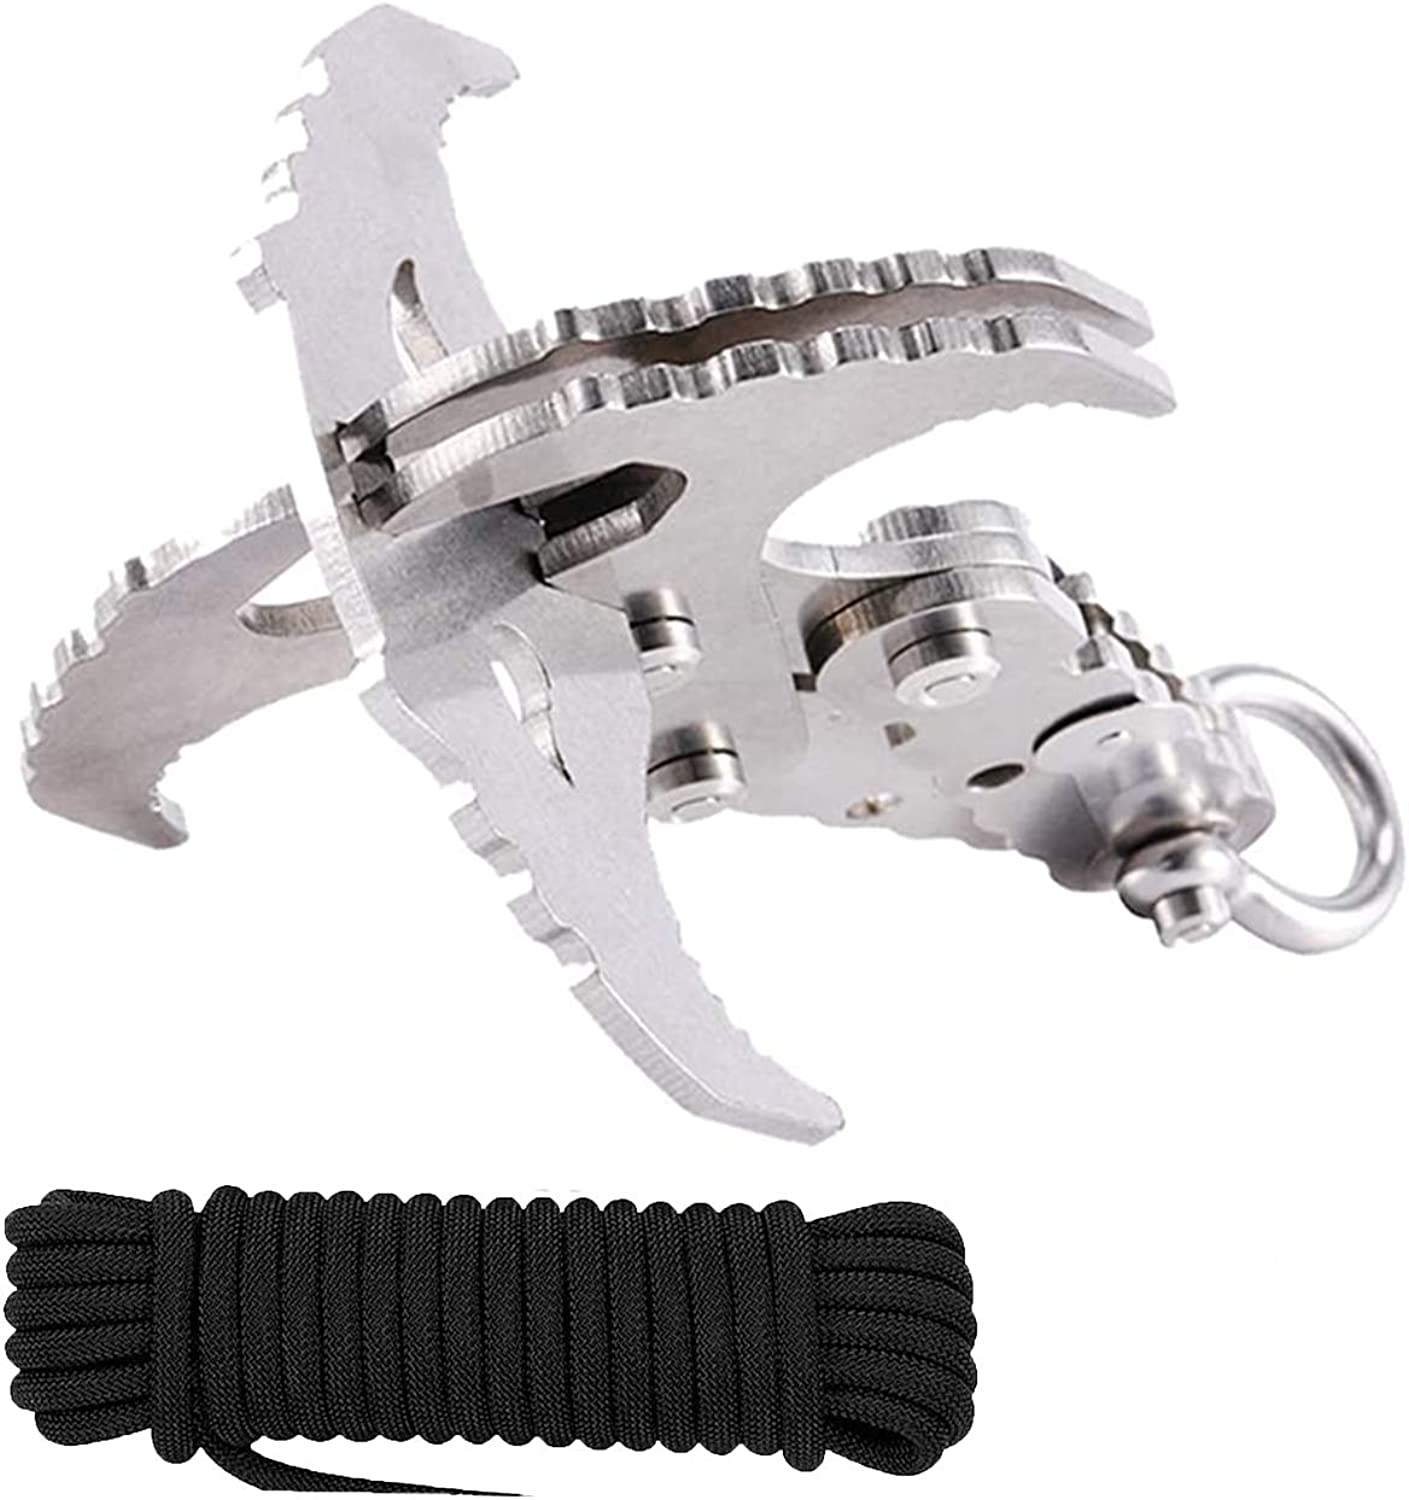 Grappling Hook Folding Gravity Rock Climbing Hooks 3 Claw for Survival Hiking